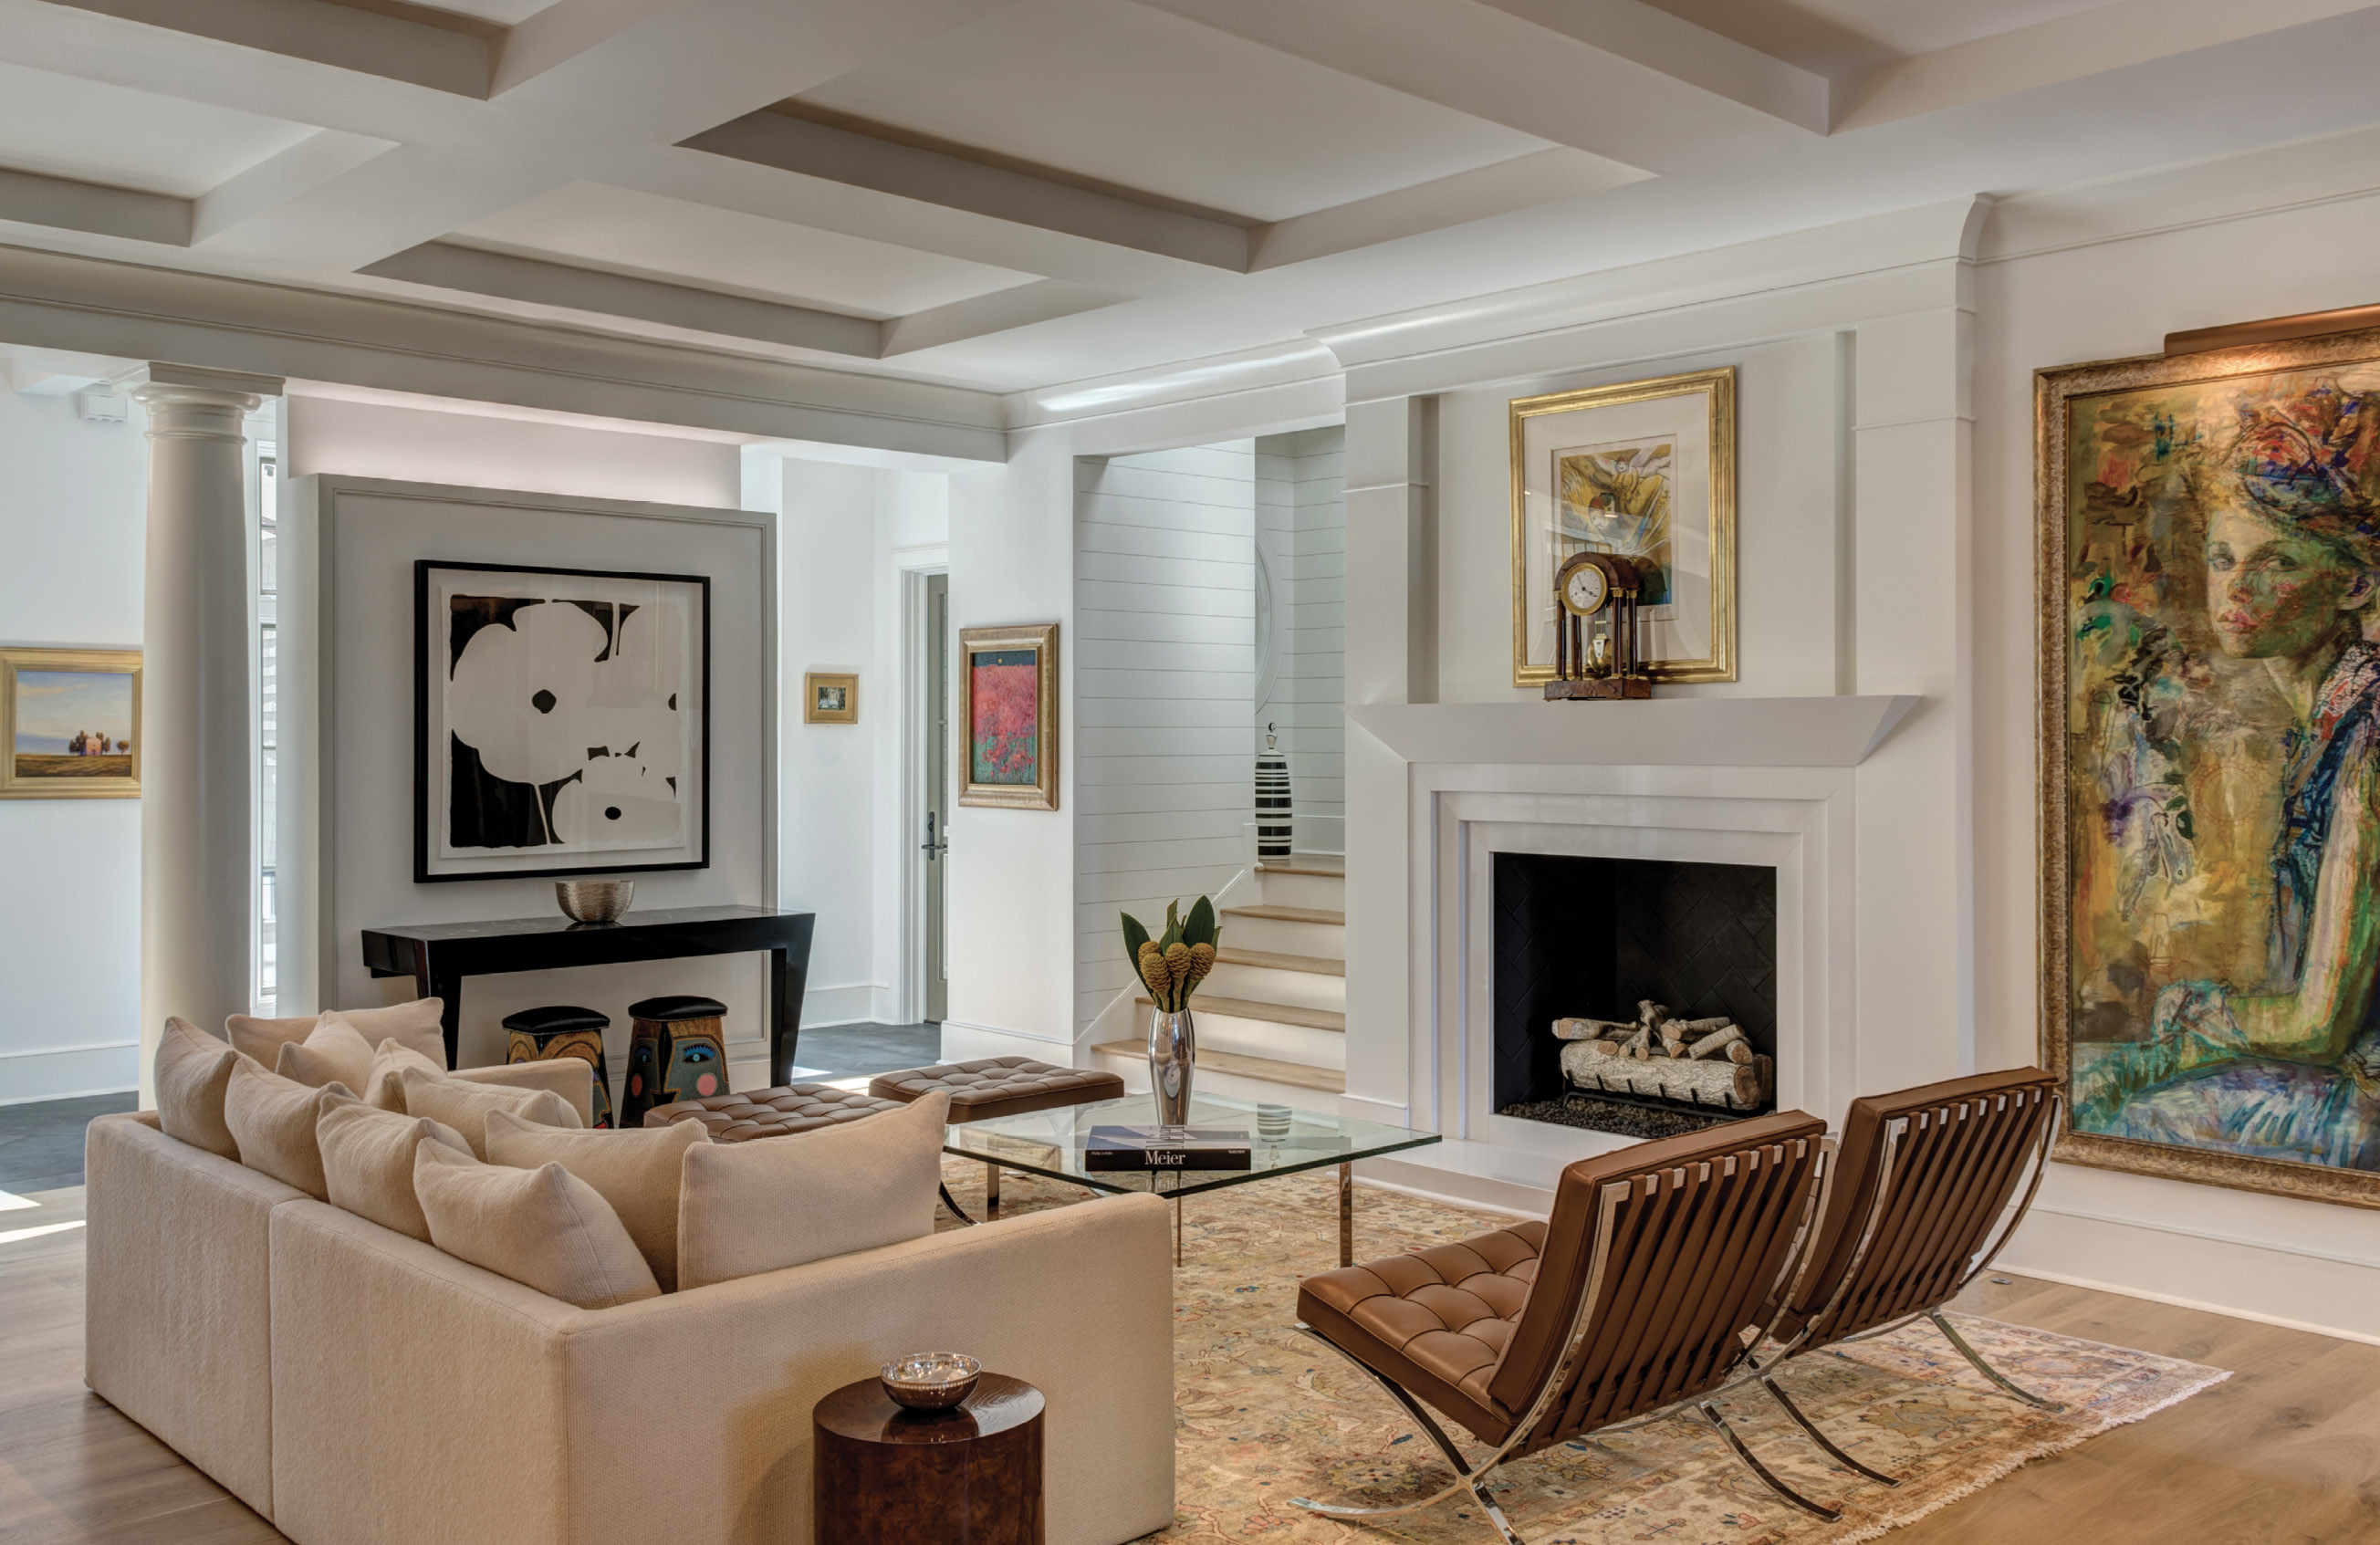 ART ABOUNDS: Years of global travel and a stint living abroad have boosted the couple's art and rug collections. A soothing neutral palette allows the art, including that of Charlestonbased artists Jonathan Green, Robert Lange, and Mickey Williams, as well as works by Chagall, Matisse, Miro, and Picasso, among others, to take center stage.